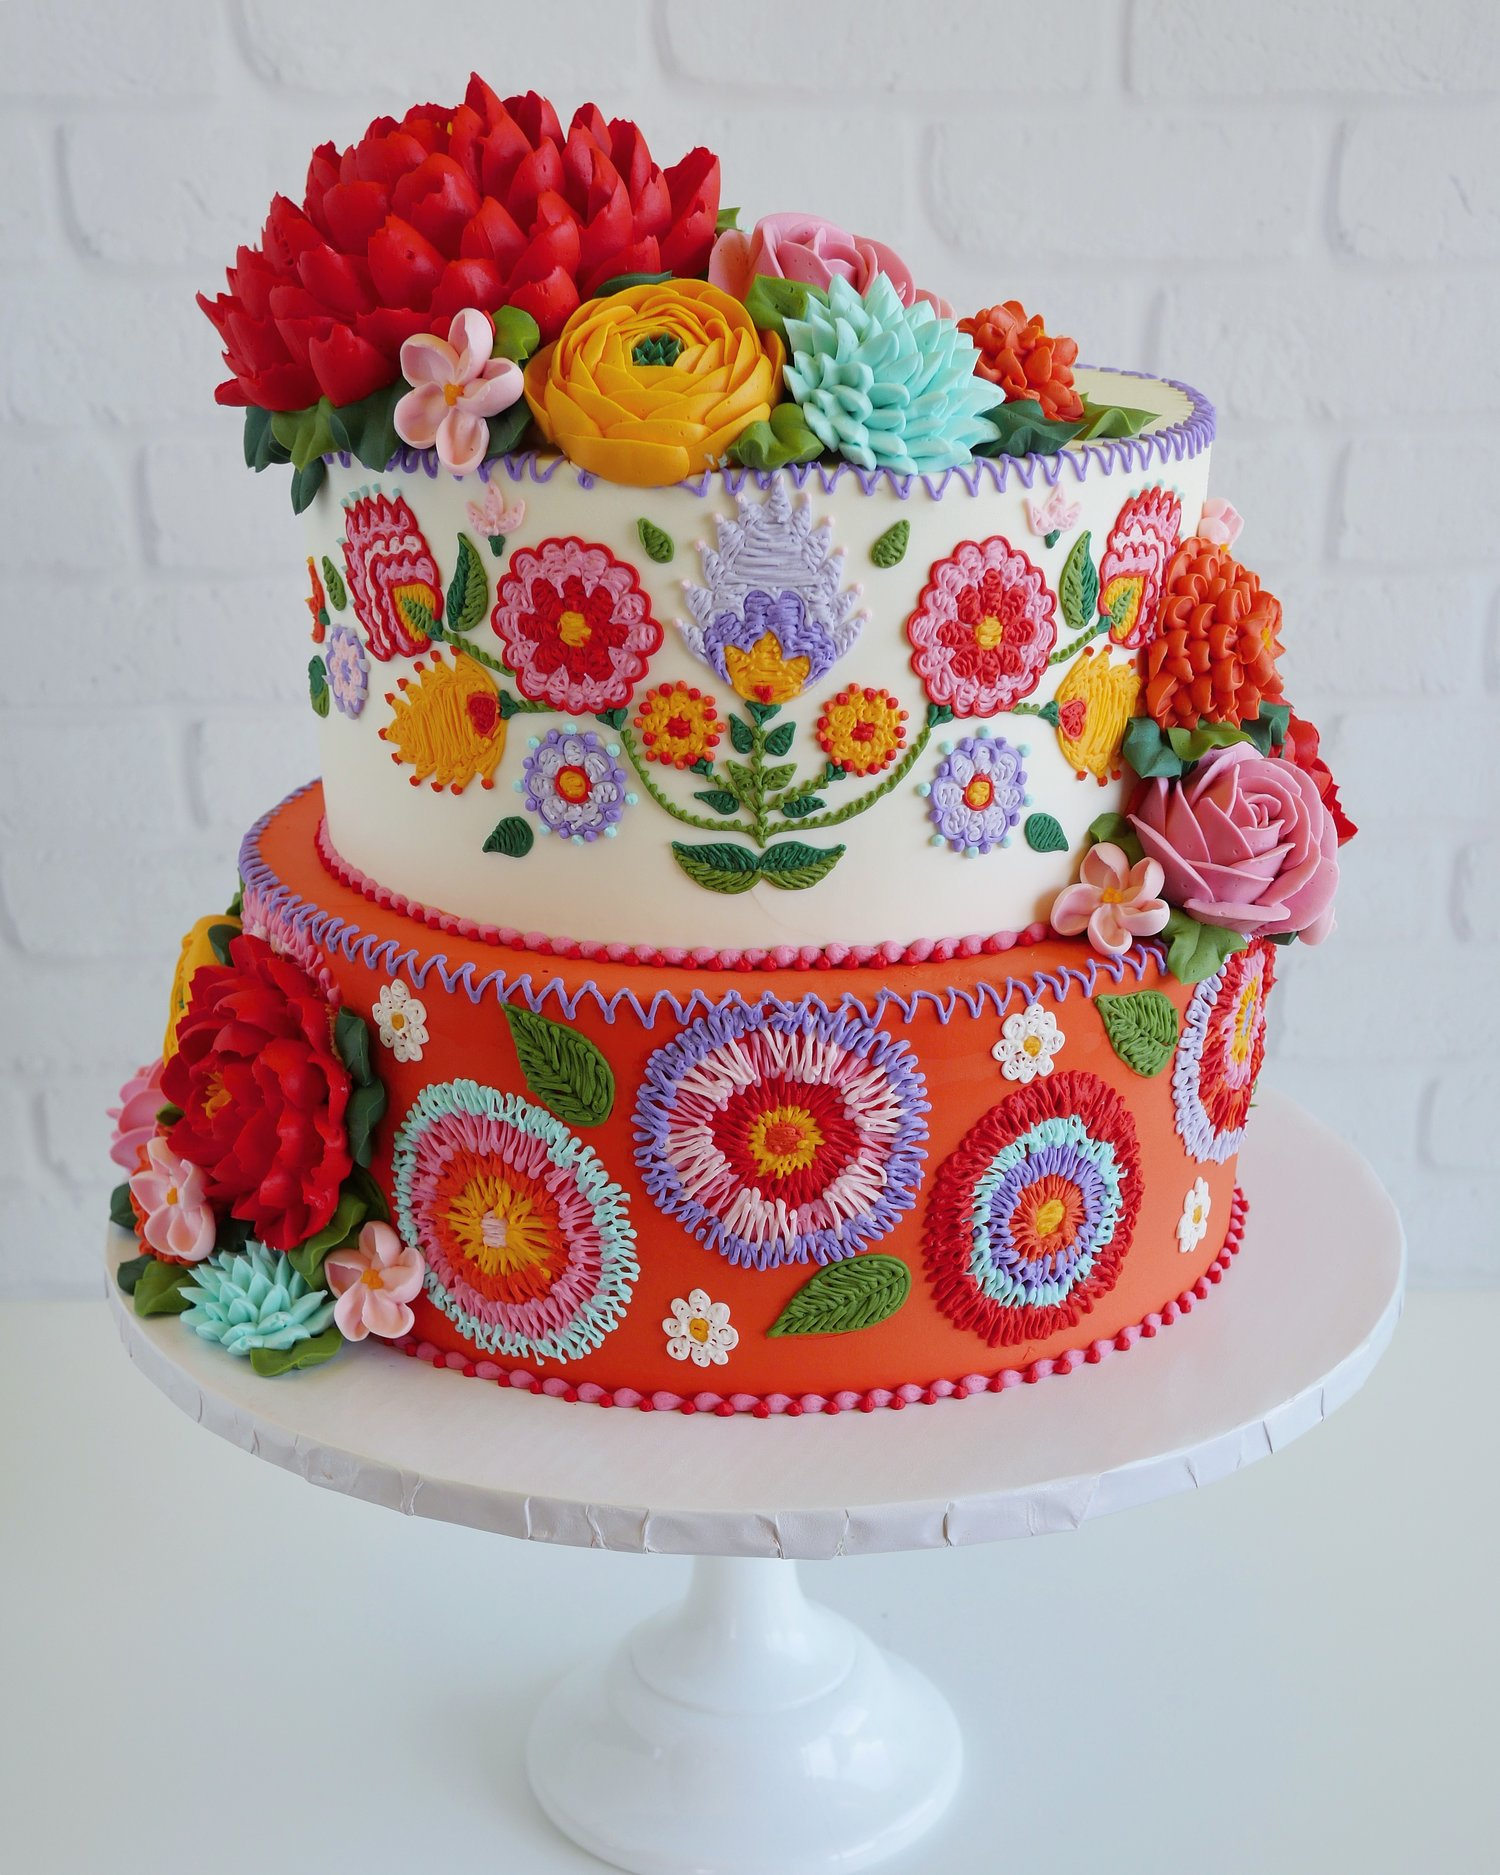 These Tasty Cakes are Decorated to Look Like Embroidered Dresses